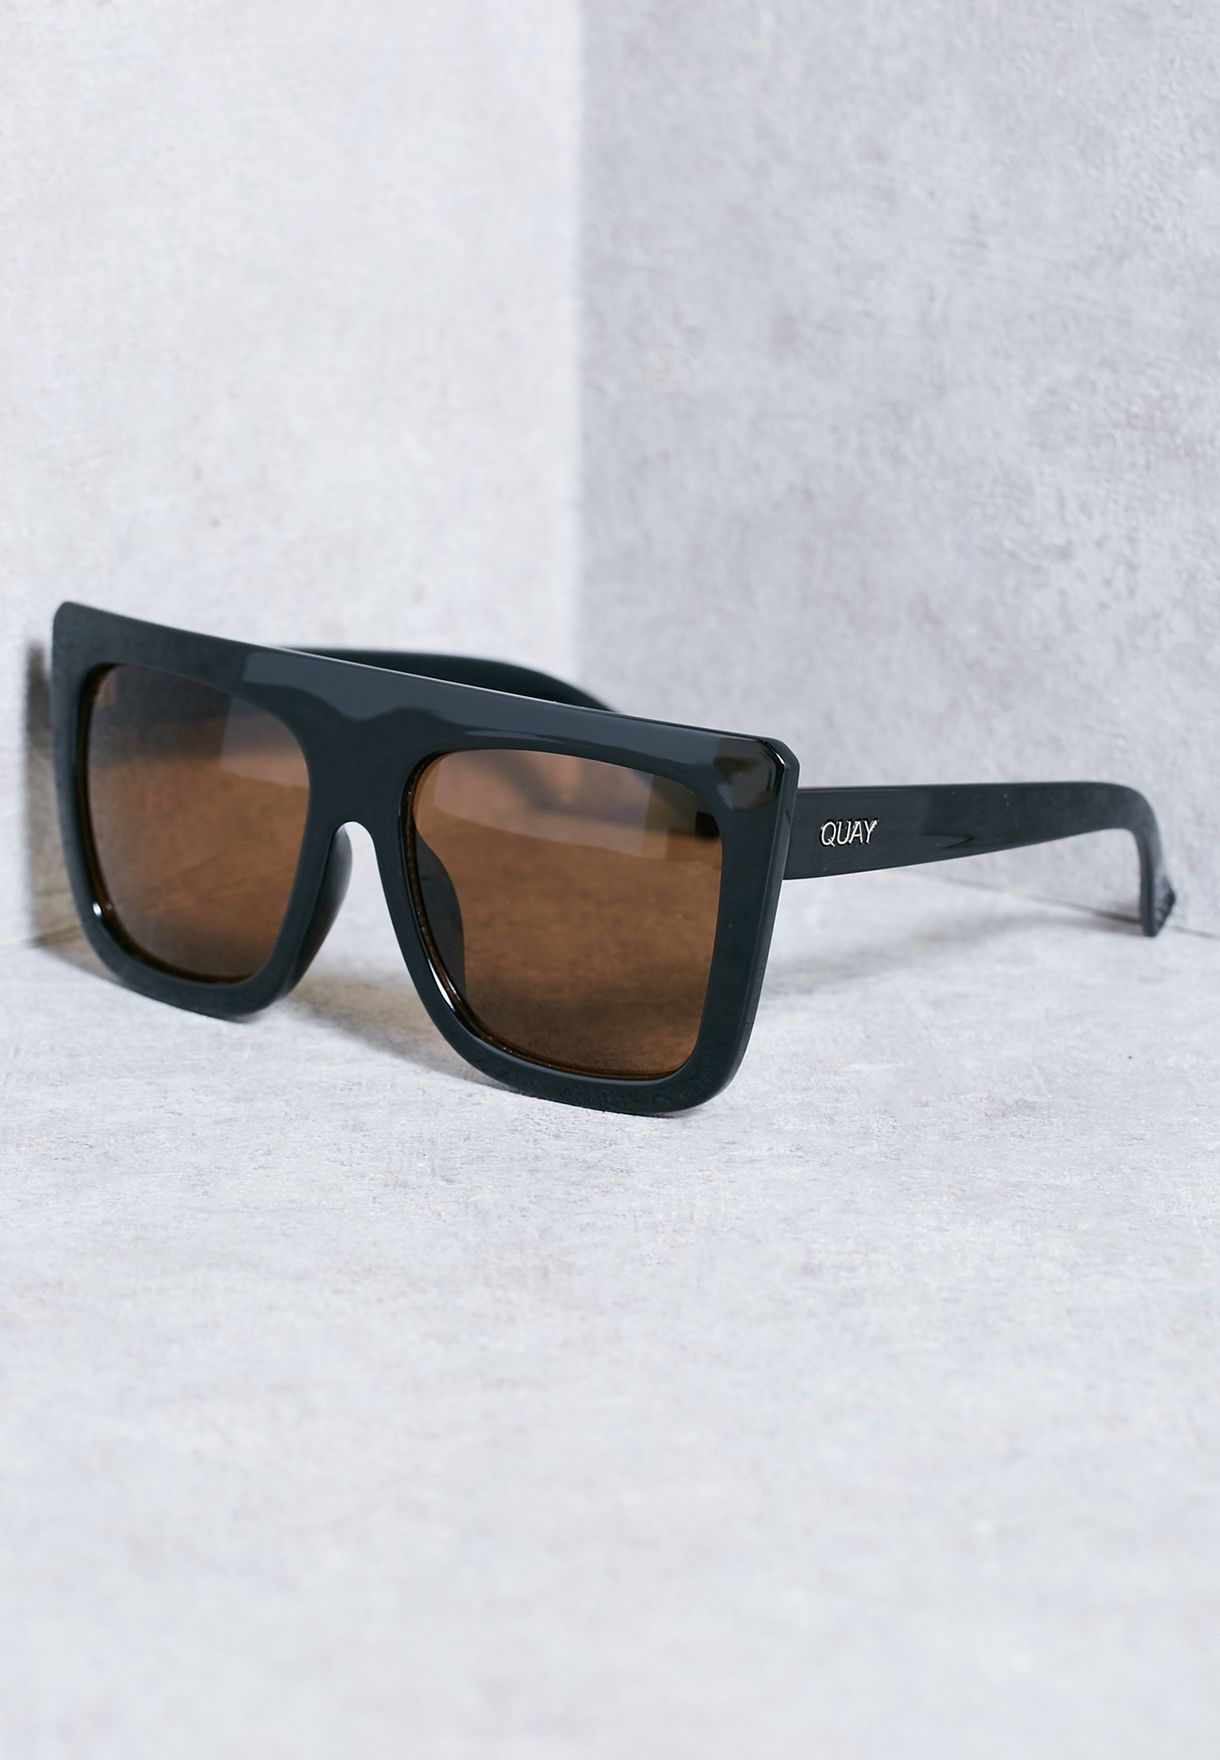 5c4b8f8be80 Shop Quay Australia black Cafe Racer Sunglasses QU-000183 BLK BROWN for  Women in Saudi - QU896AC65KHE